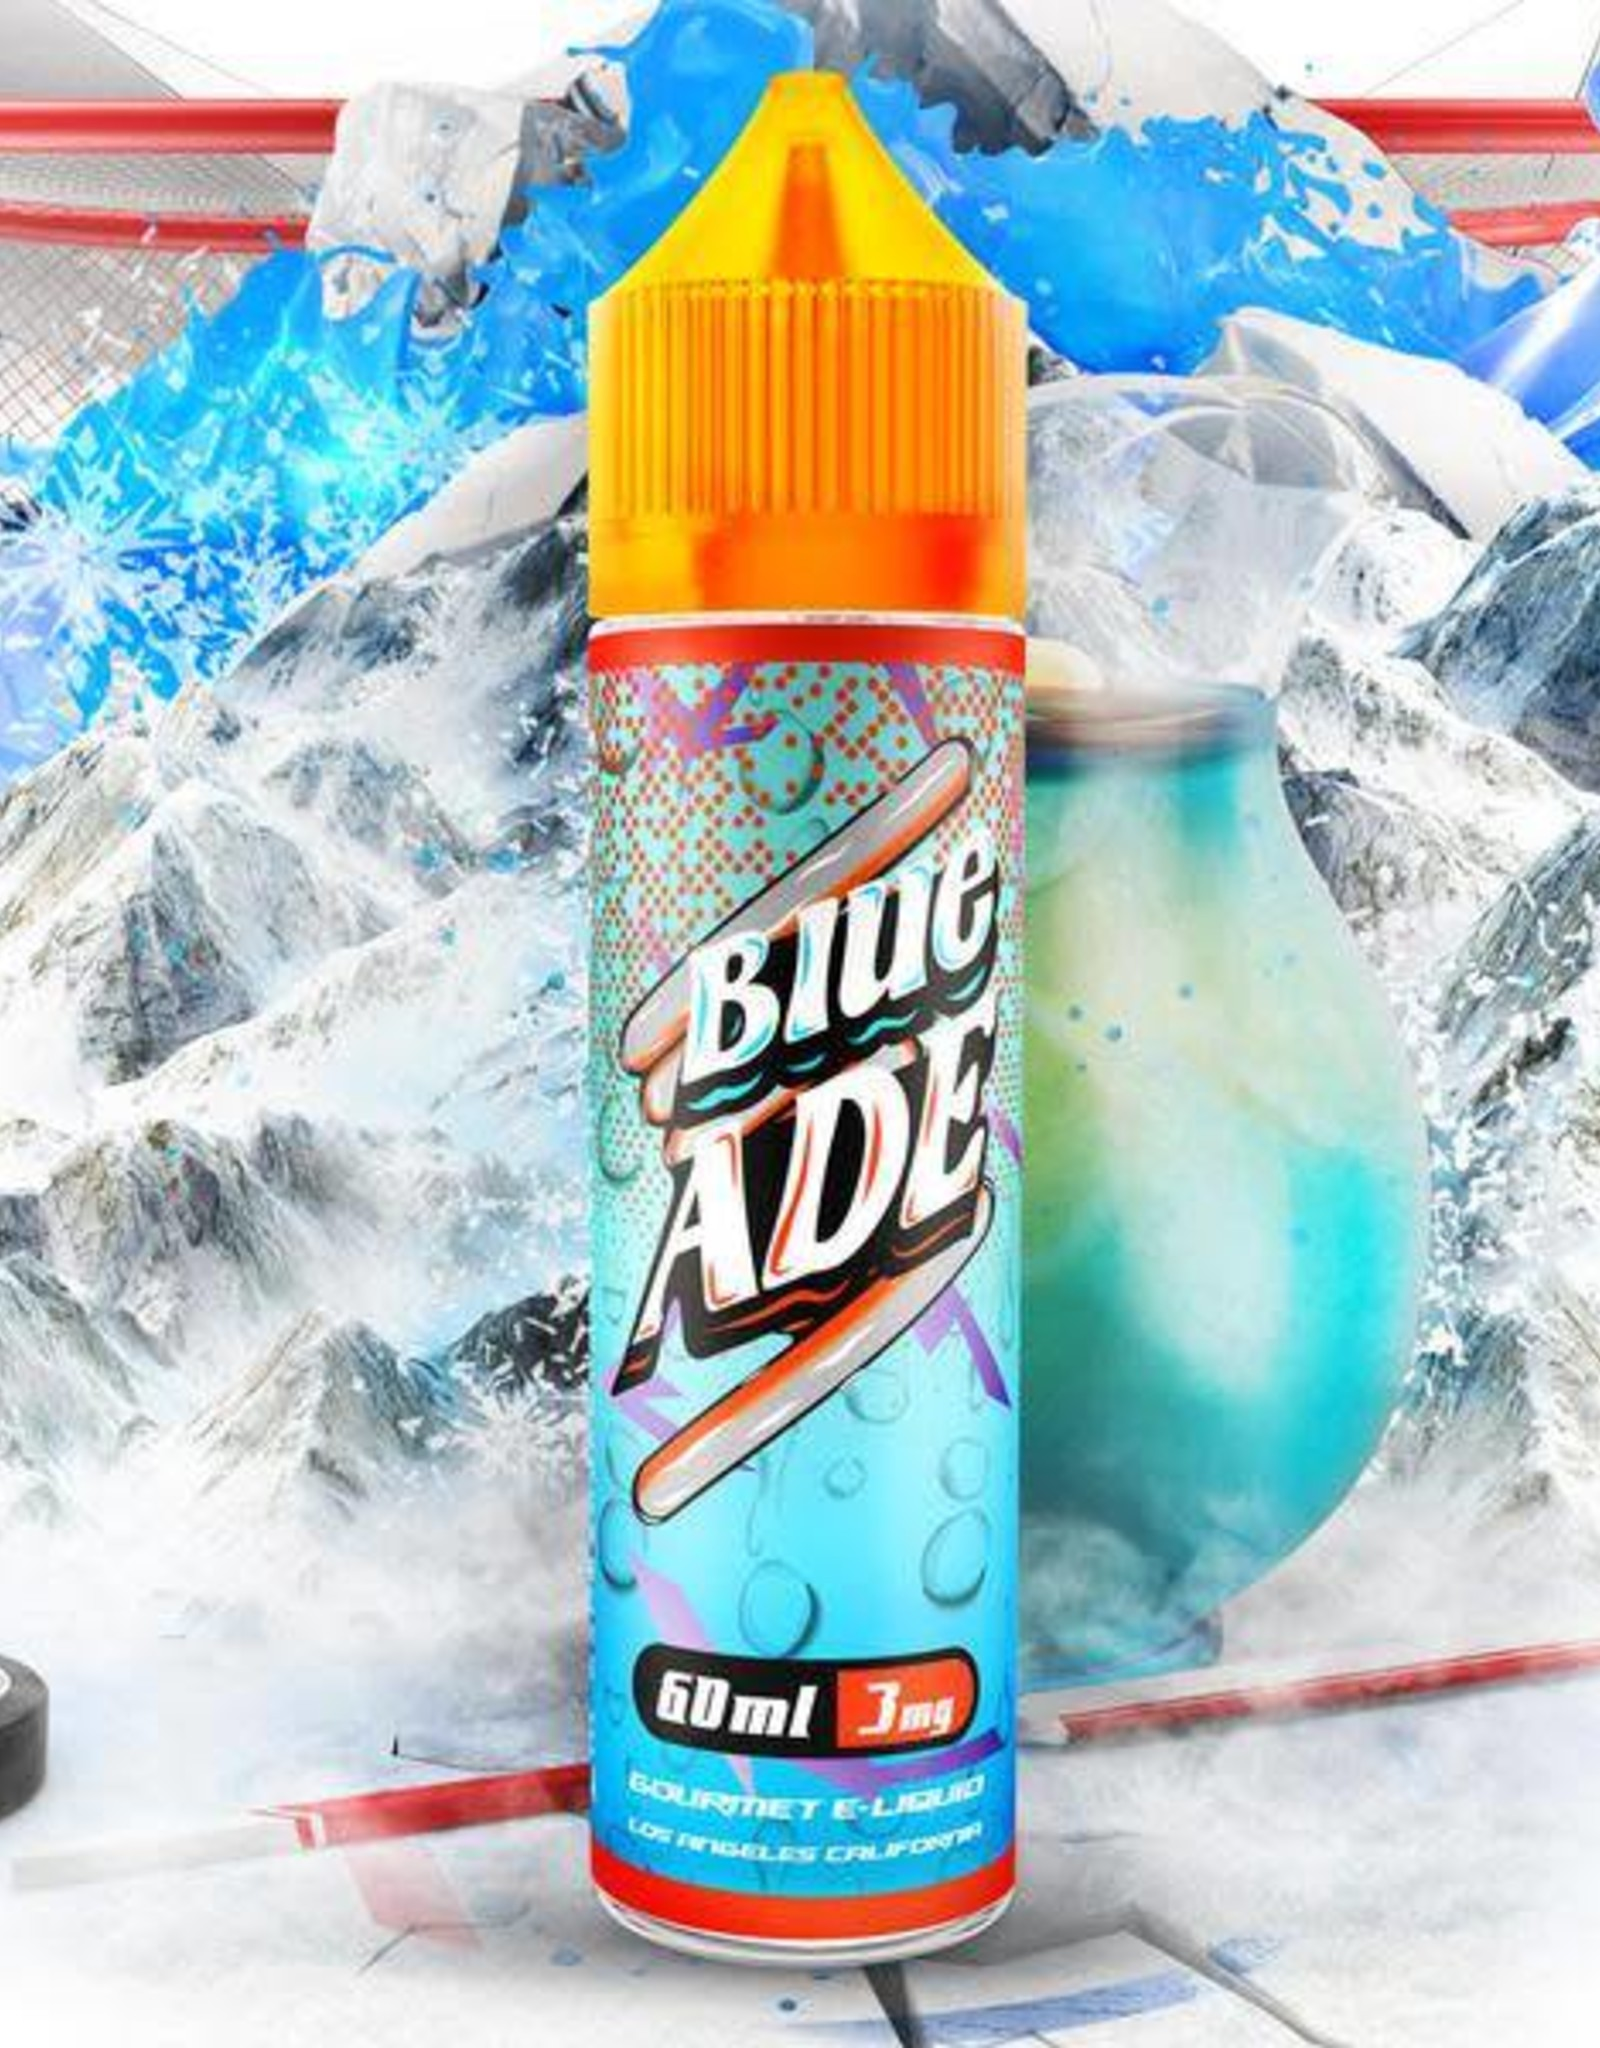 ADE ADE - Blue ADE (60mL)